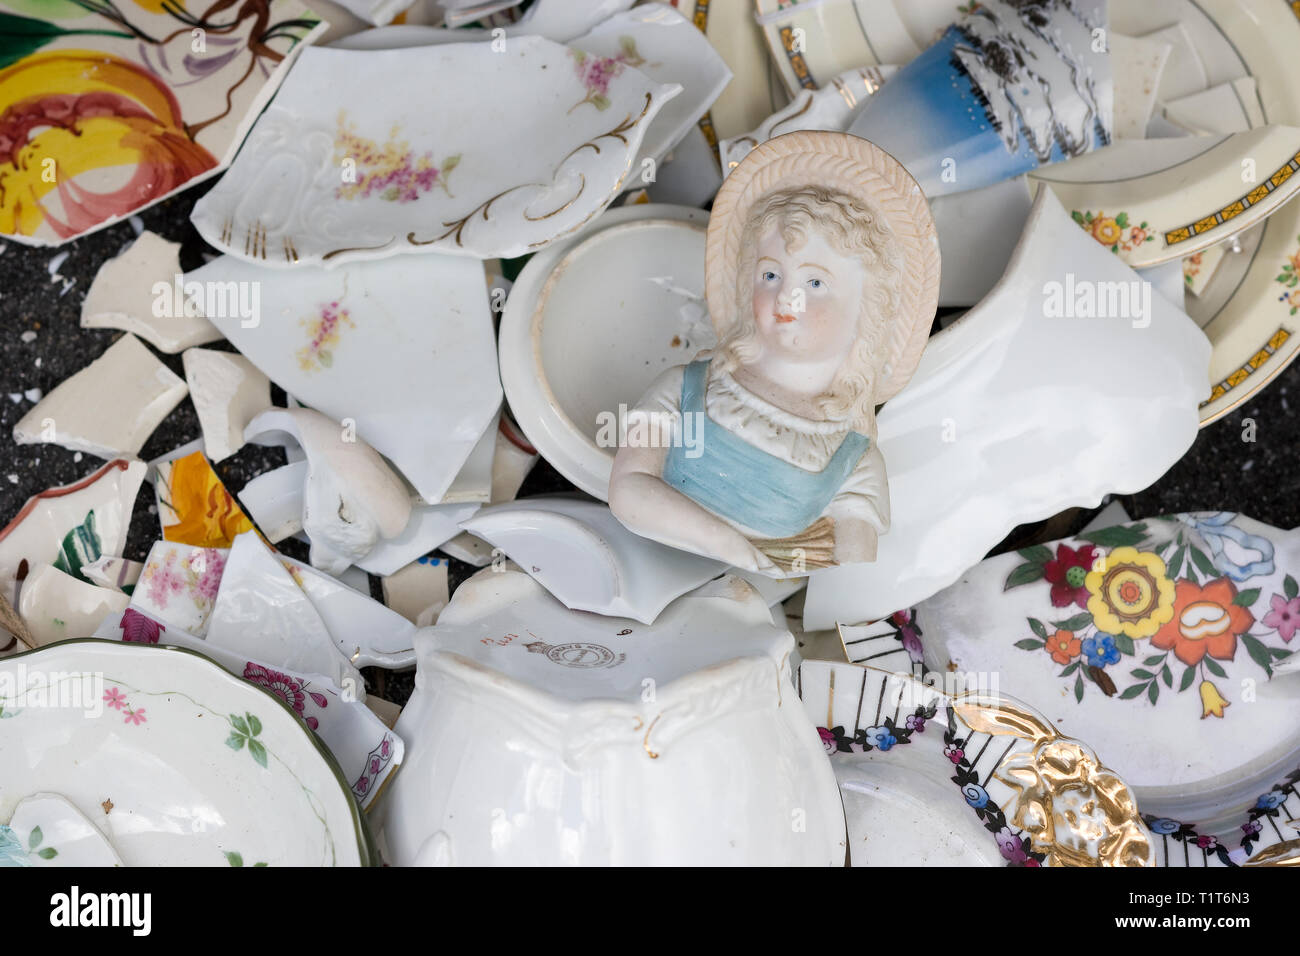 Wreckage of housewares after a Severe storm - Stock Image